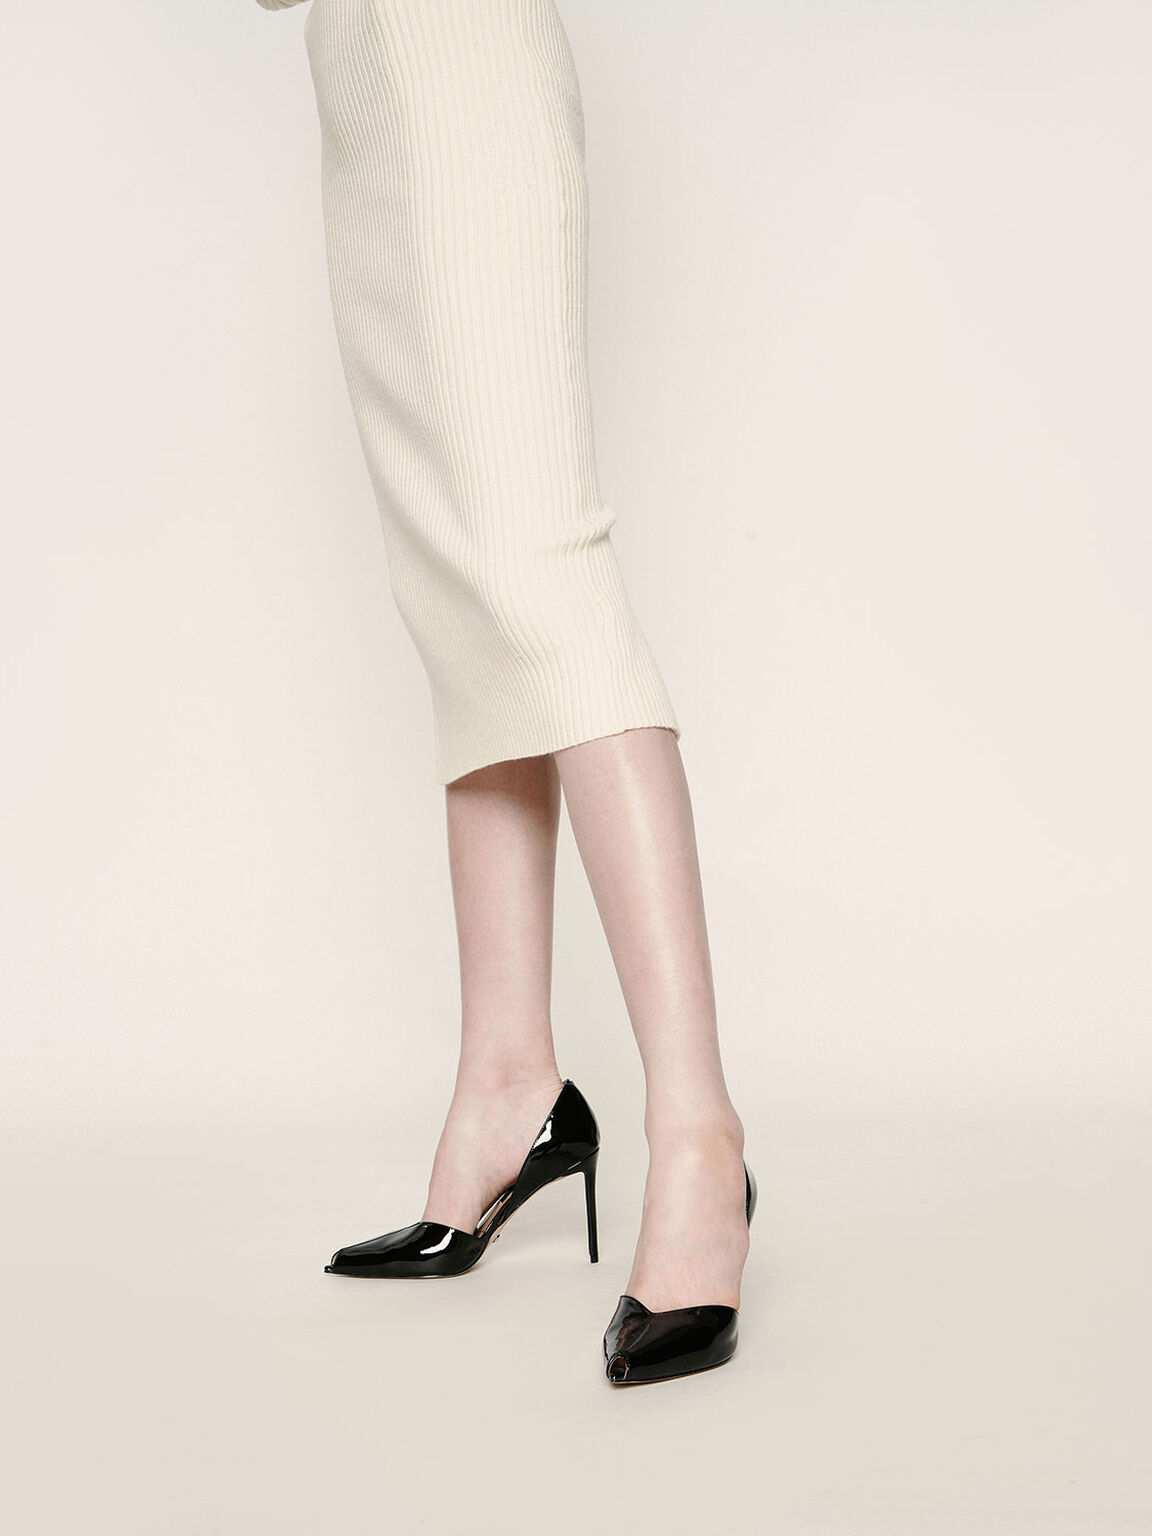 Leather Peep-Toe D'Orsay Pumps, Black, hi-res